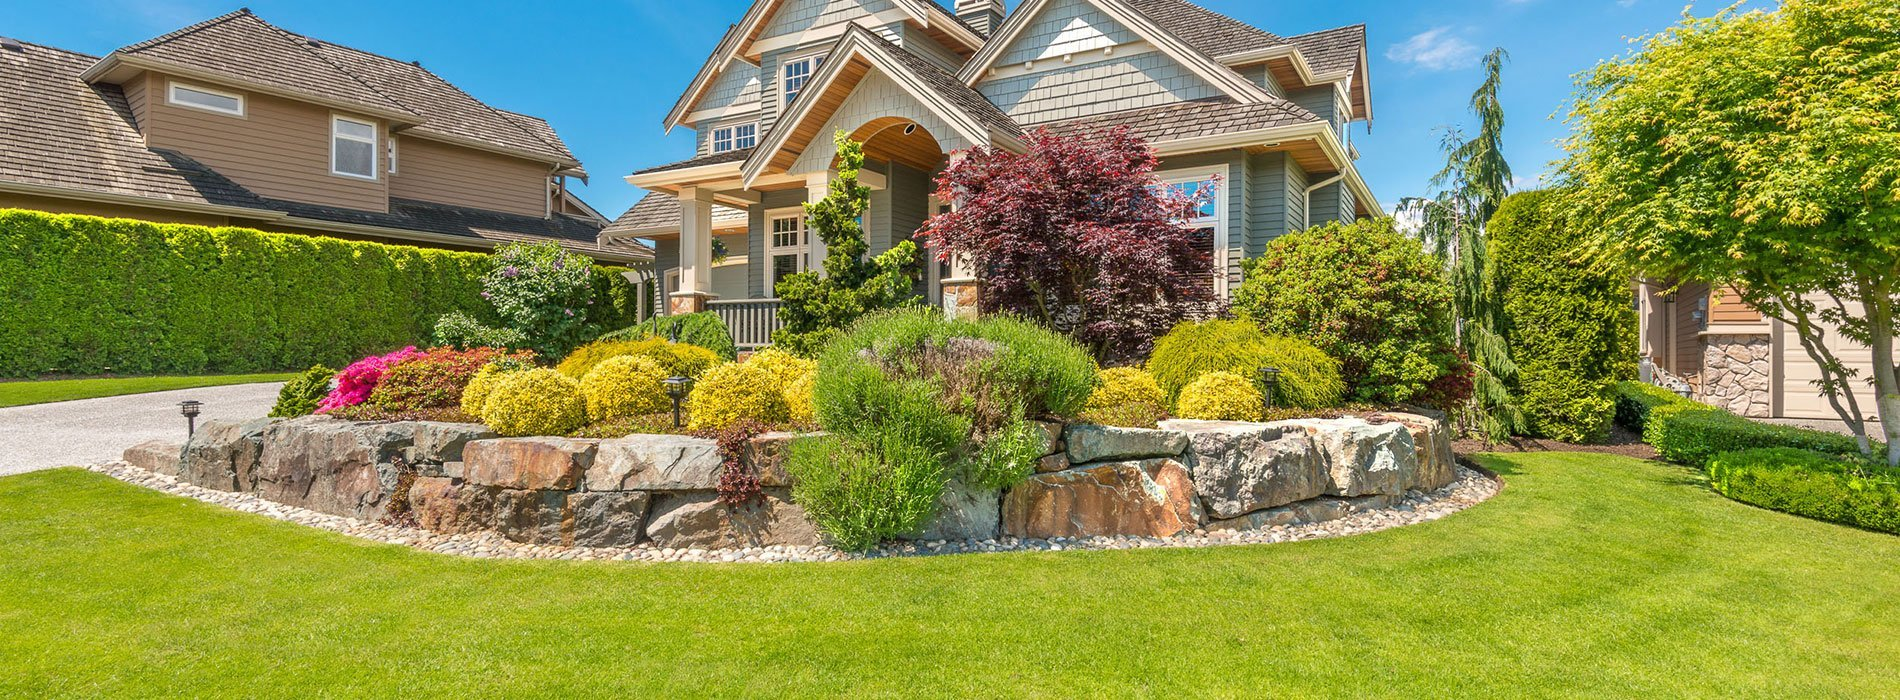 All pro landscape lawn care and landscaping atkinson nh for Professional landscaping service